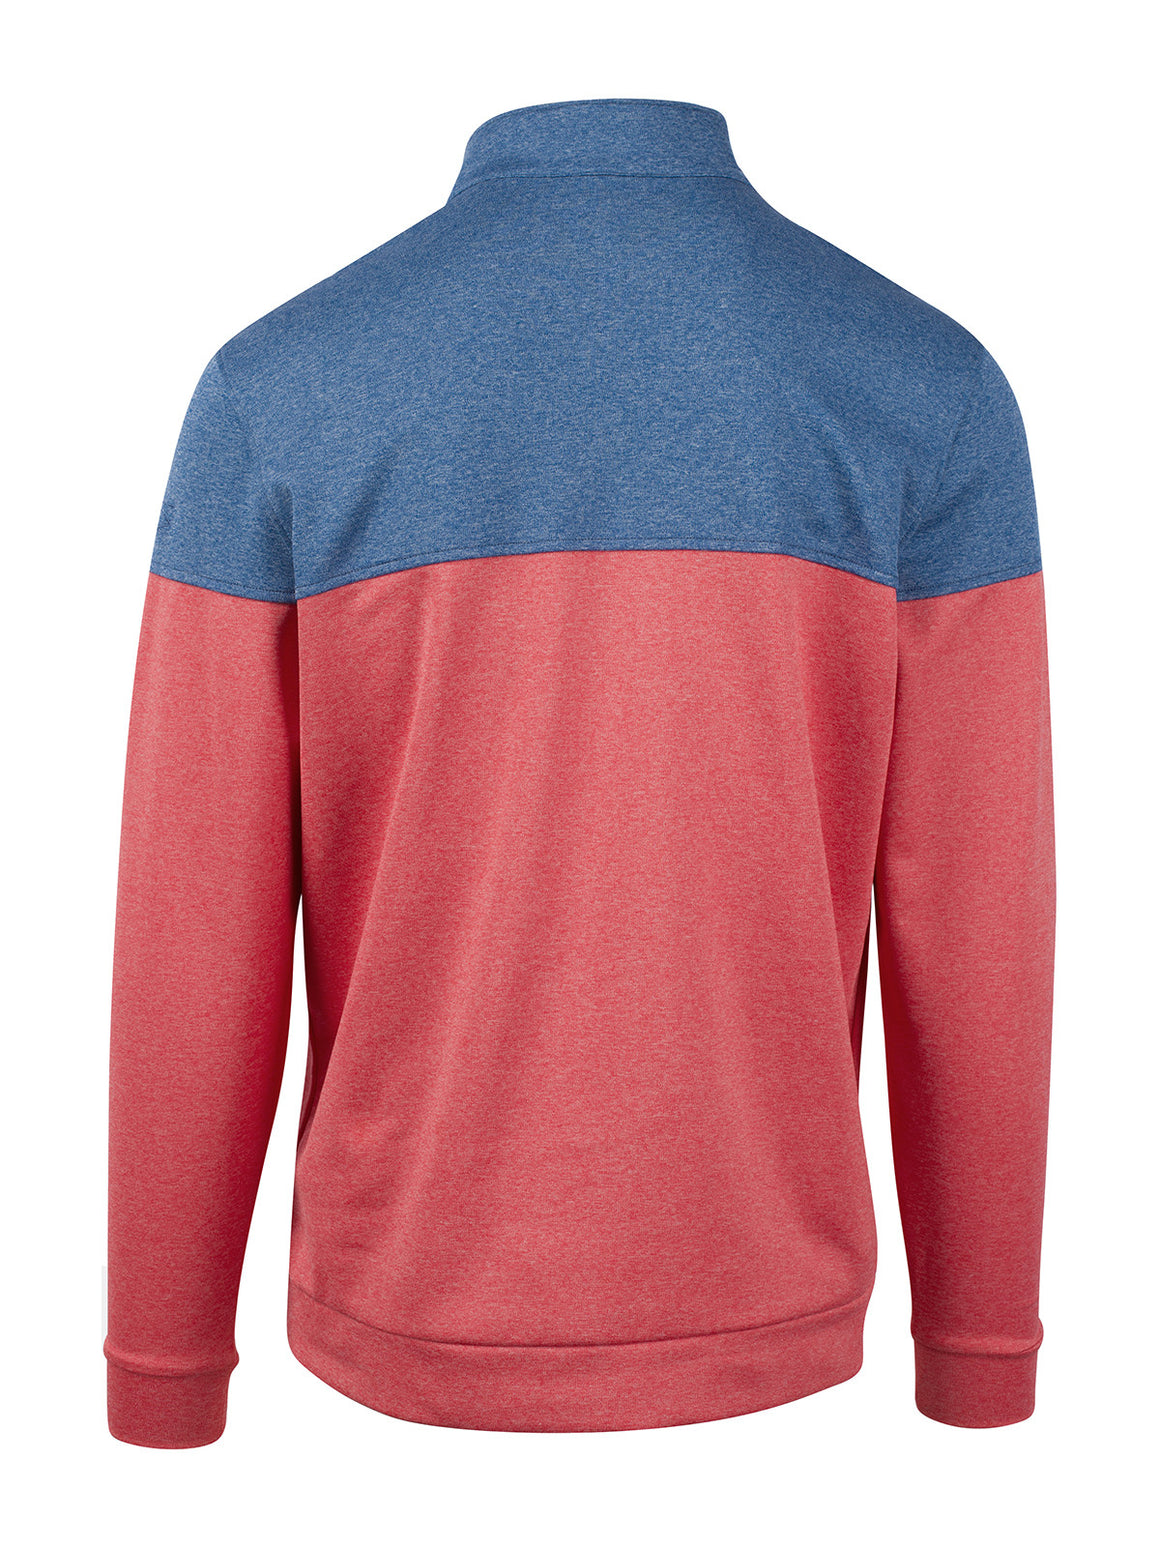 Contra Half Zip - Oyster Heather (Cayenne Heather)